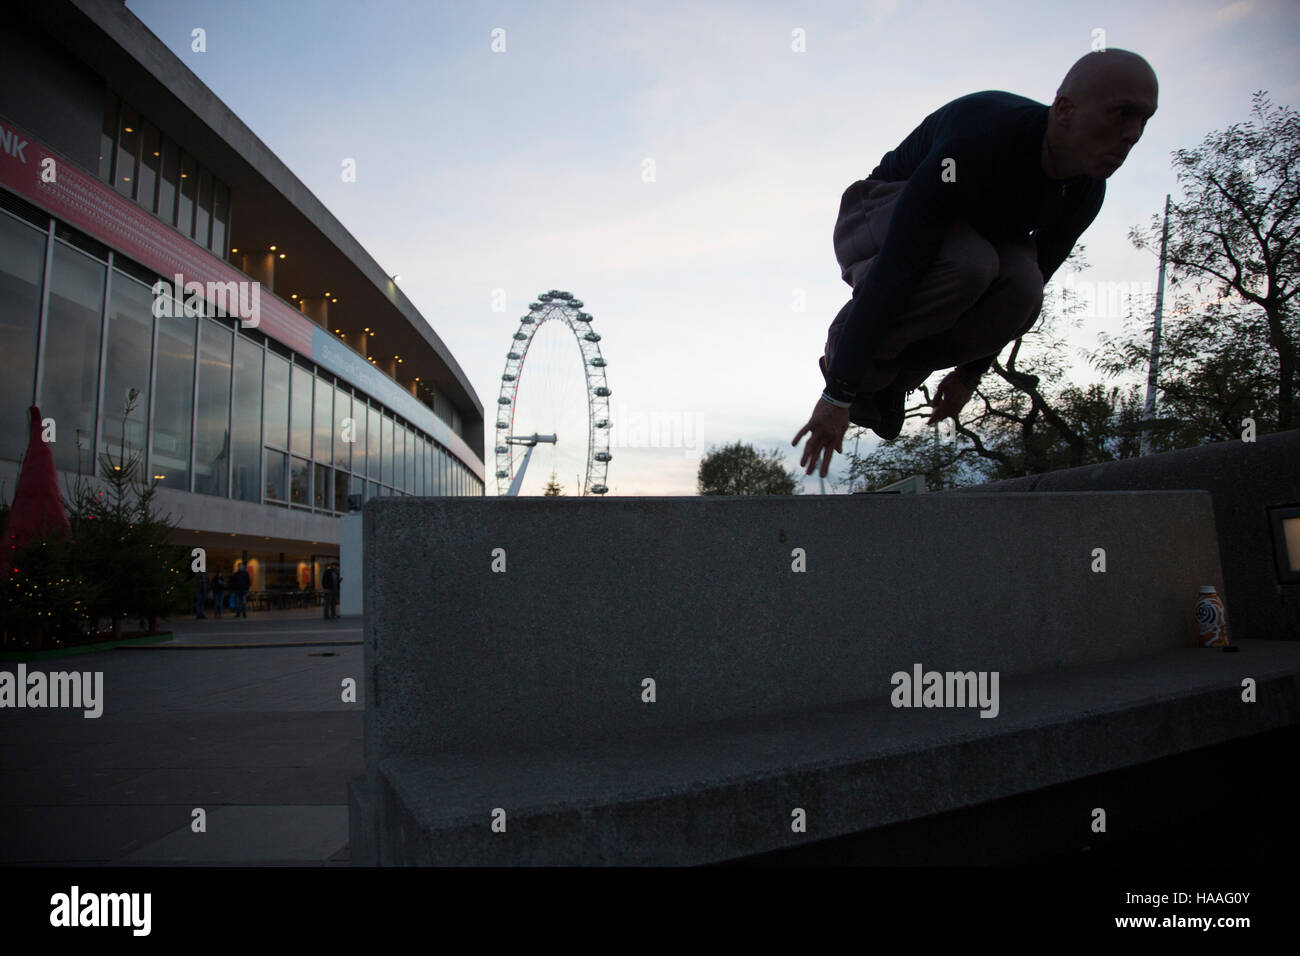 Parkour practitioners on the Southbank, London, United Kingdom. The South Bank is a significant arts and entertainment - Stock Image